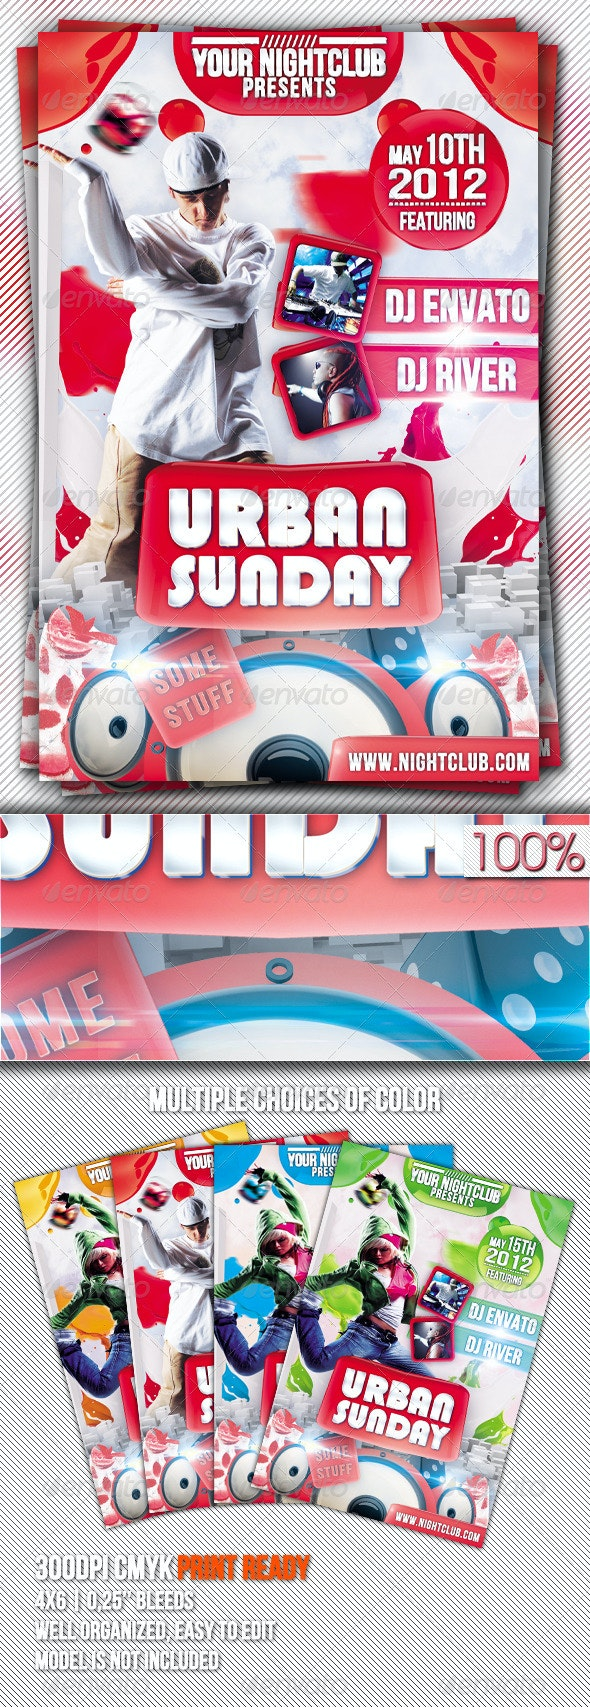 Urban Sunday Flyer Template - Clubs & Parties Events